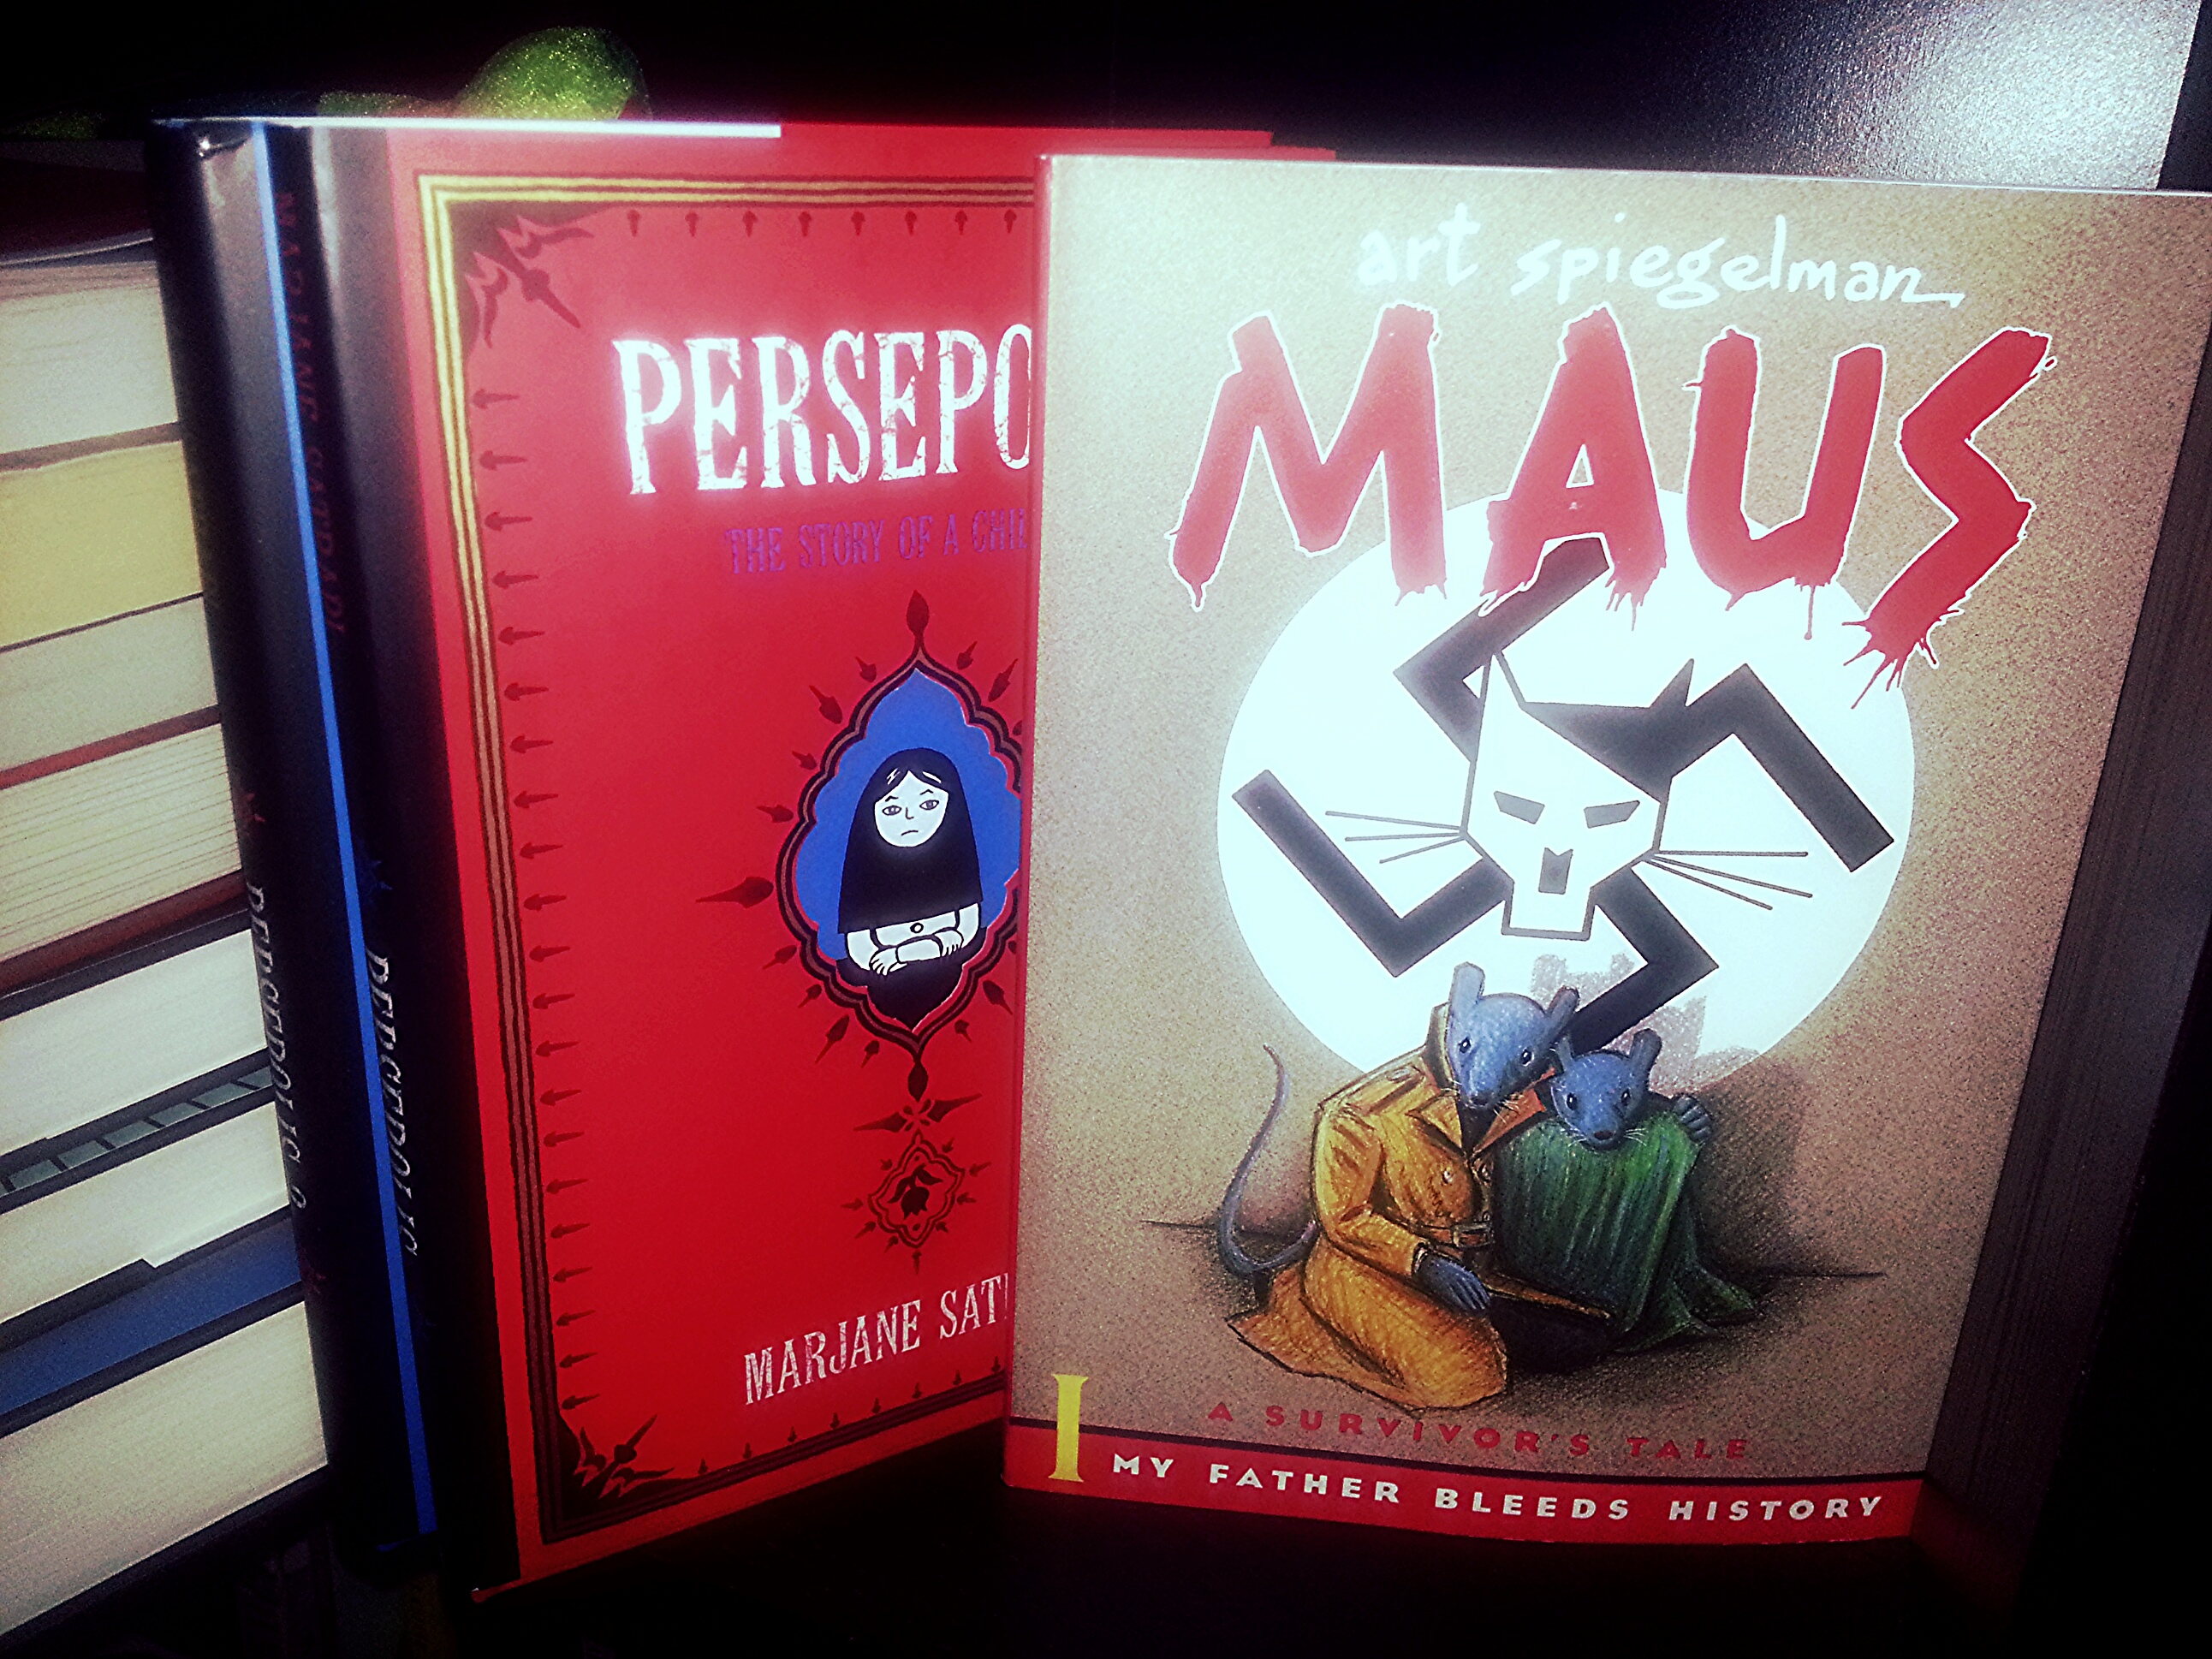 maus and persepolis About persepolis originally published to wide critical acclaim in france, where it elicited comparisons to art spiegelman's maus, persepolis is marjane satrapi's wise, funny, and heartbreaking memoir of growing up in iran during the islamic revolution.